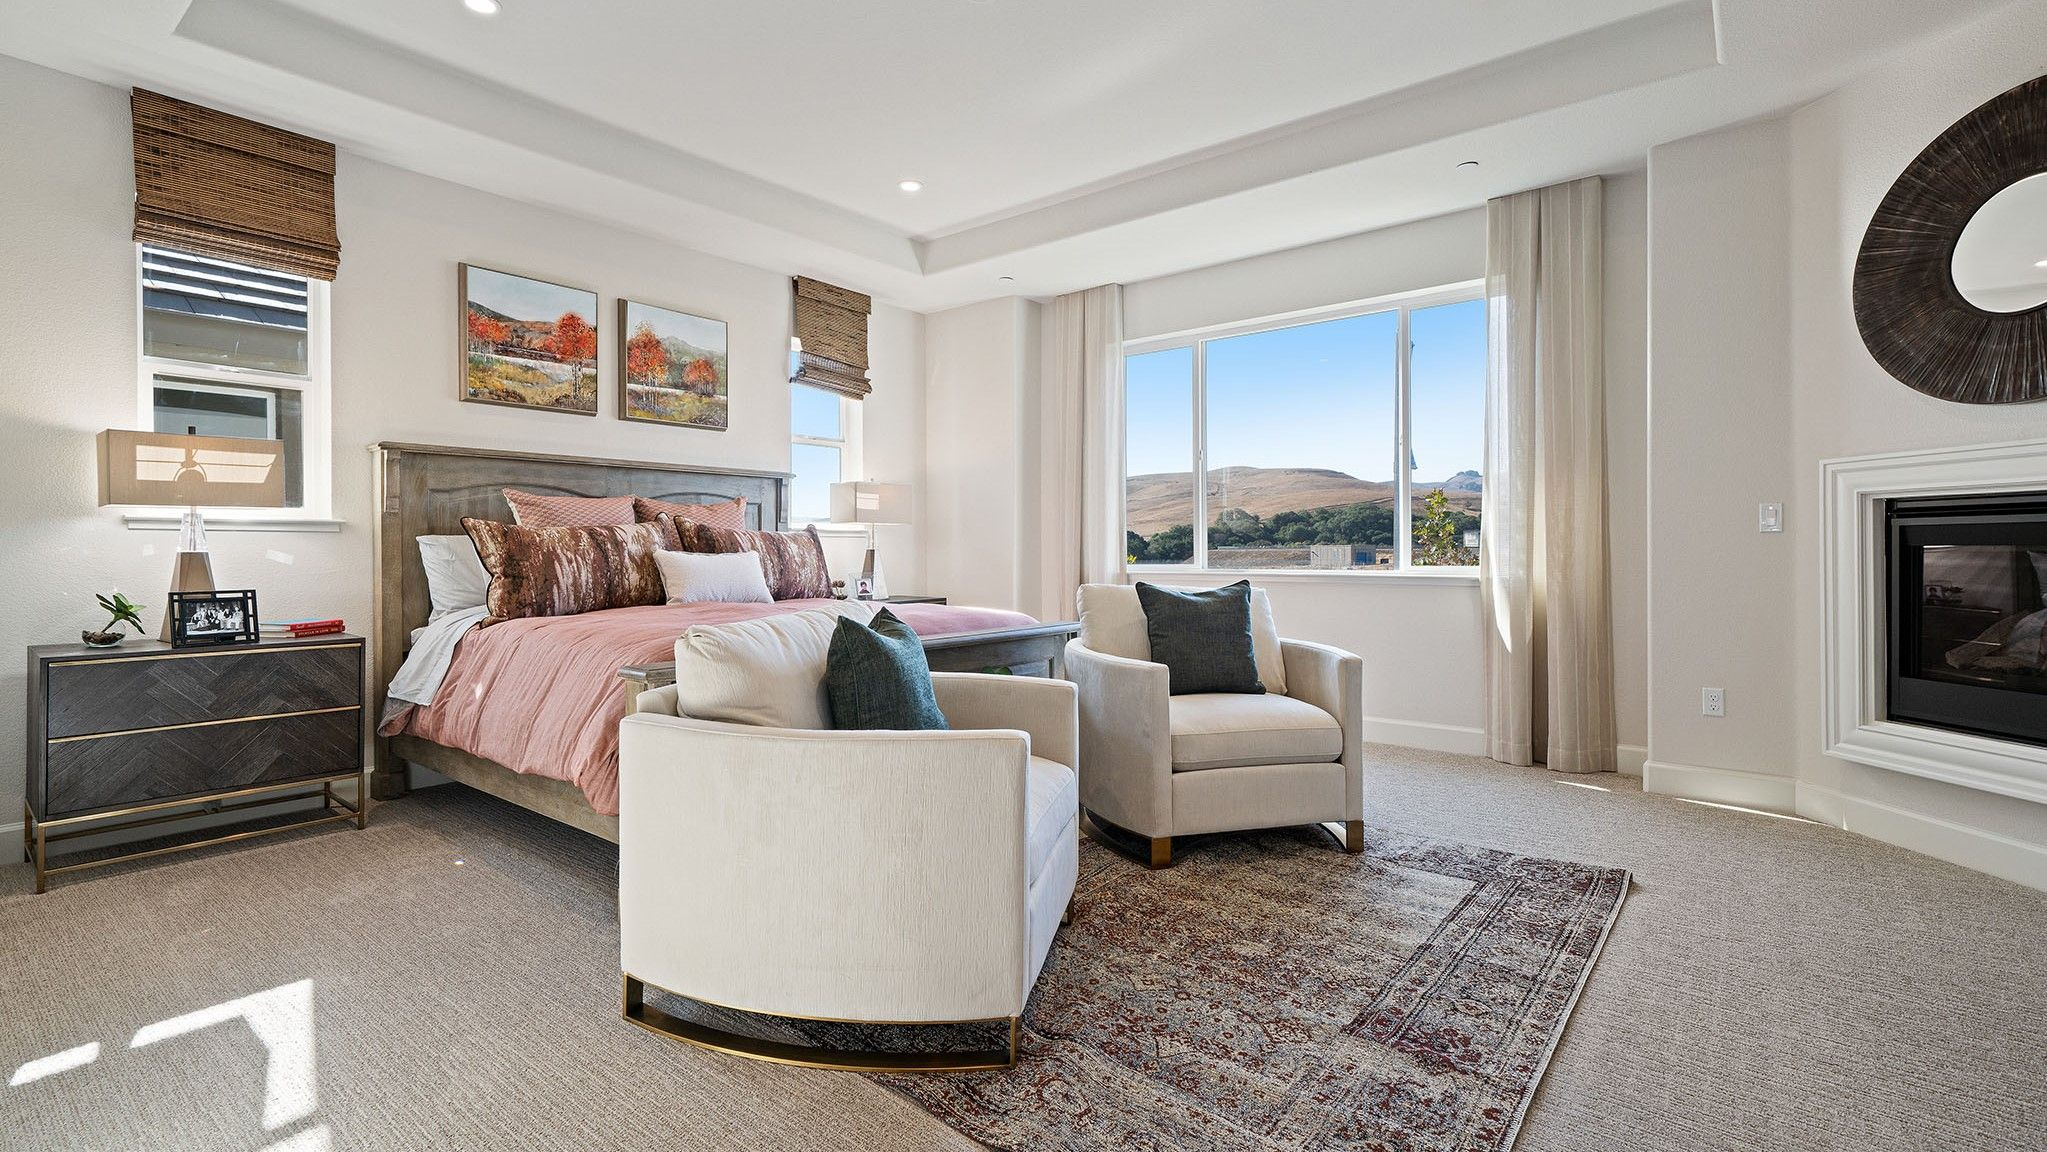 Bedroom featured in the Drake By Seeno Homes in Vallejo-Napa, CA